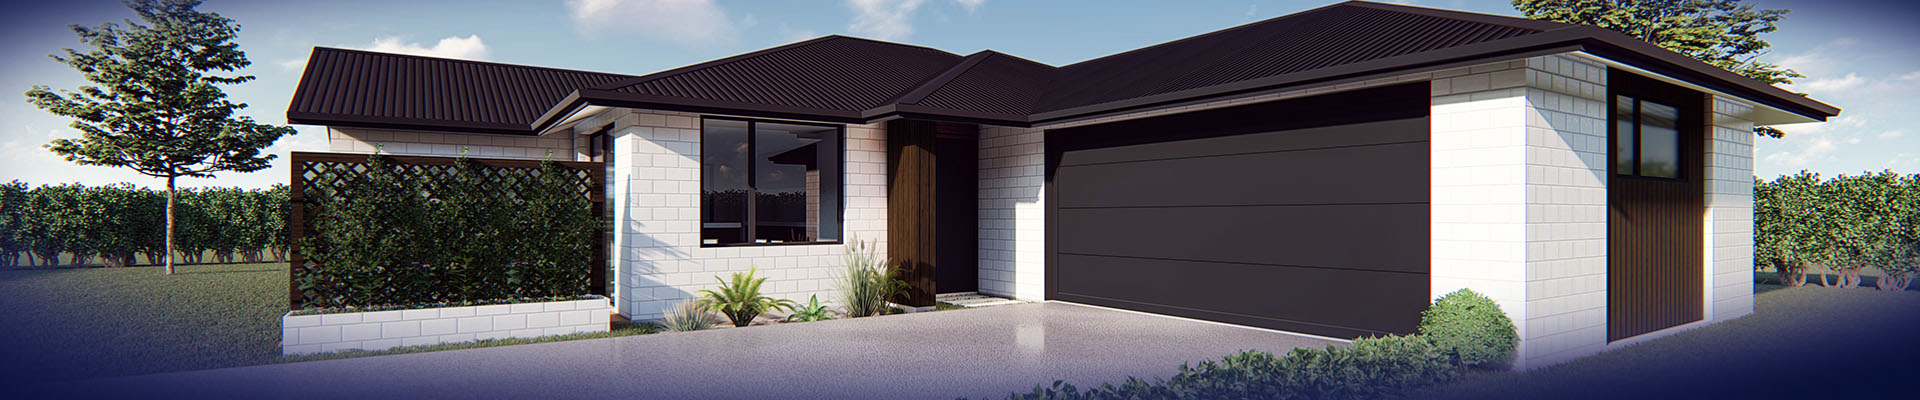 Headstart Homes Blog 1   Waikuku 1 - How to Create a Great Outdoor Entertainment Area for Your New Home